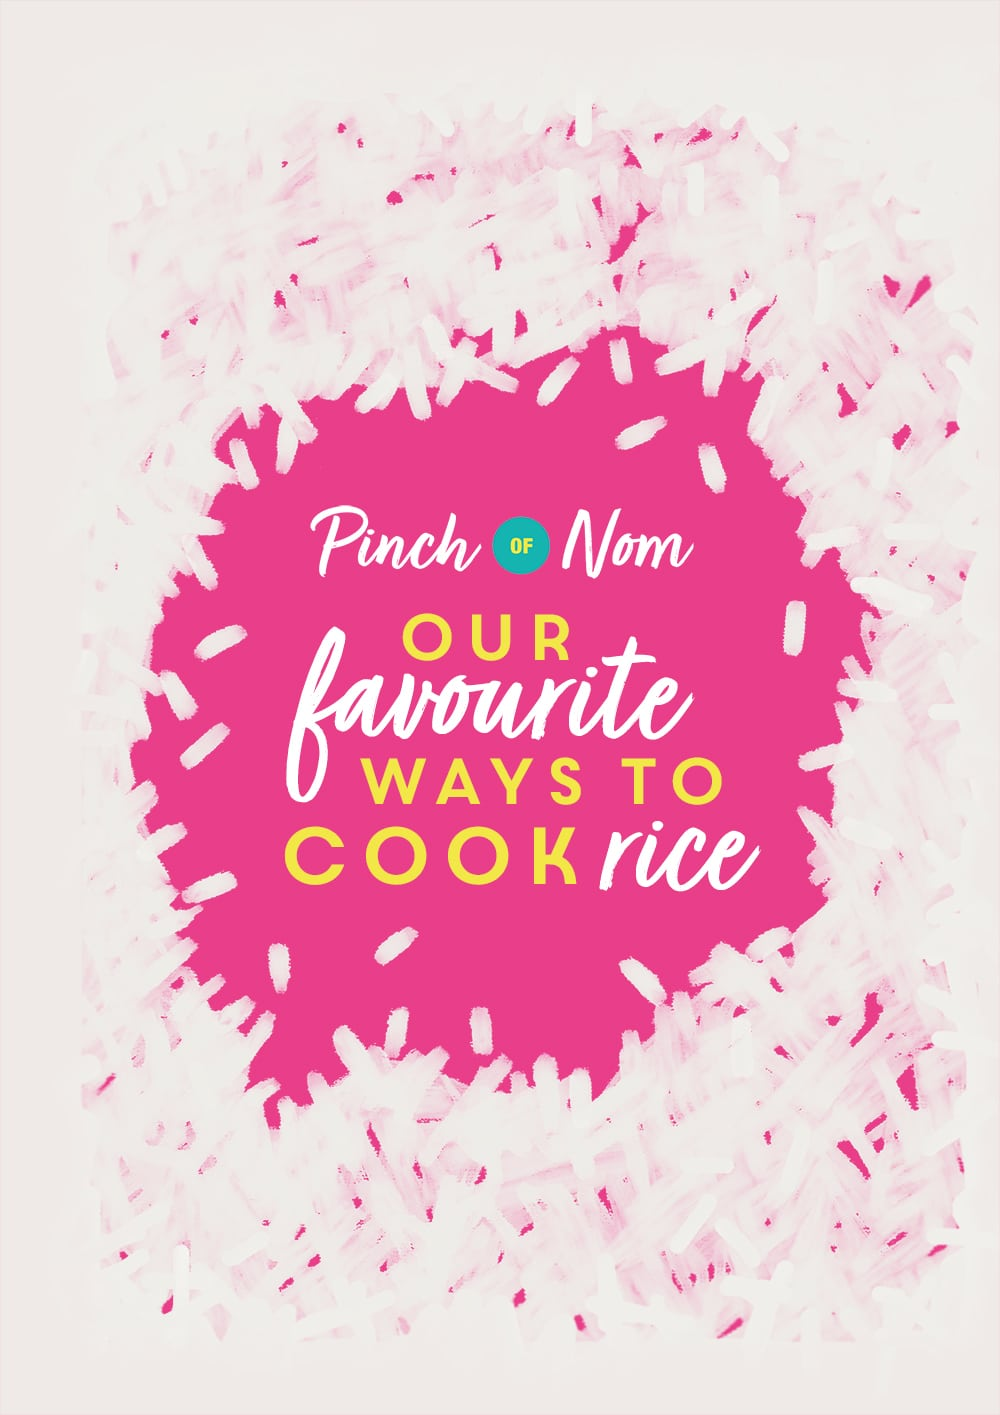 Our favourite ways to cook rice | Pinch of Nom Slimming Recipes